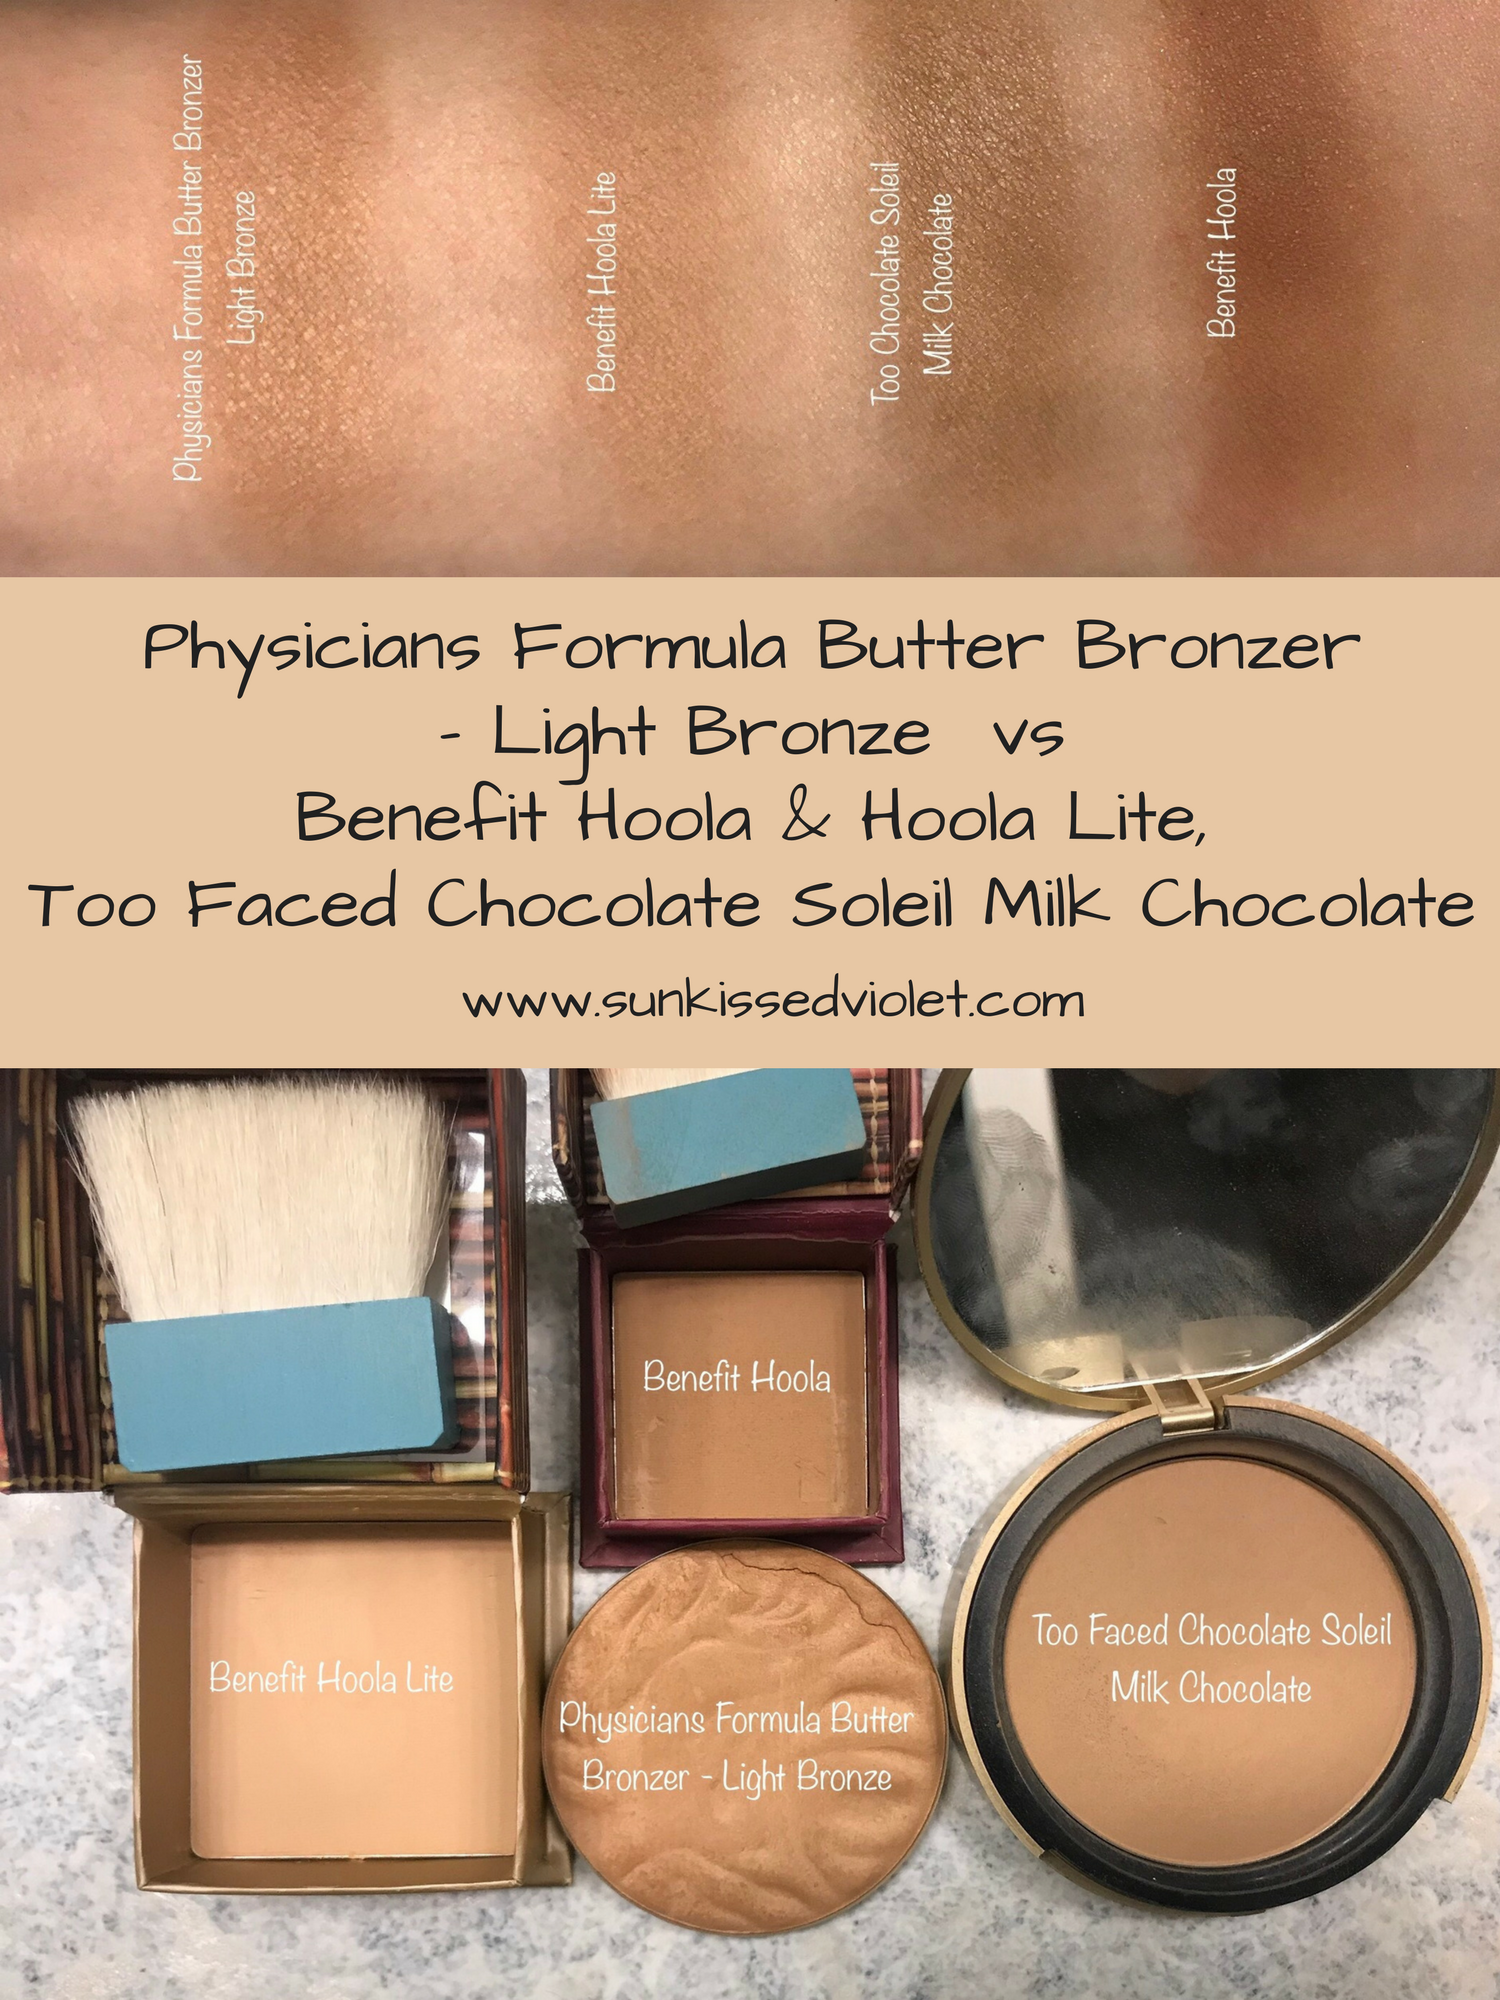 TOP 10 DRUGSTORE MAKEUP PRODUCTS THAT ARE BETTER THAN HIGH